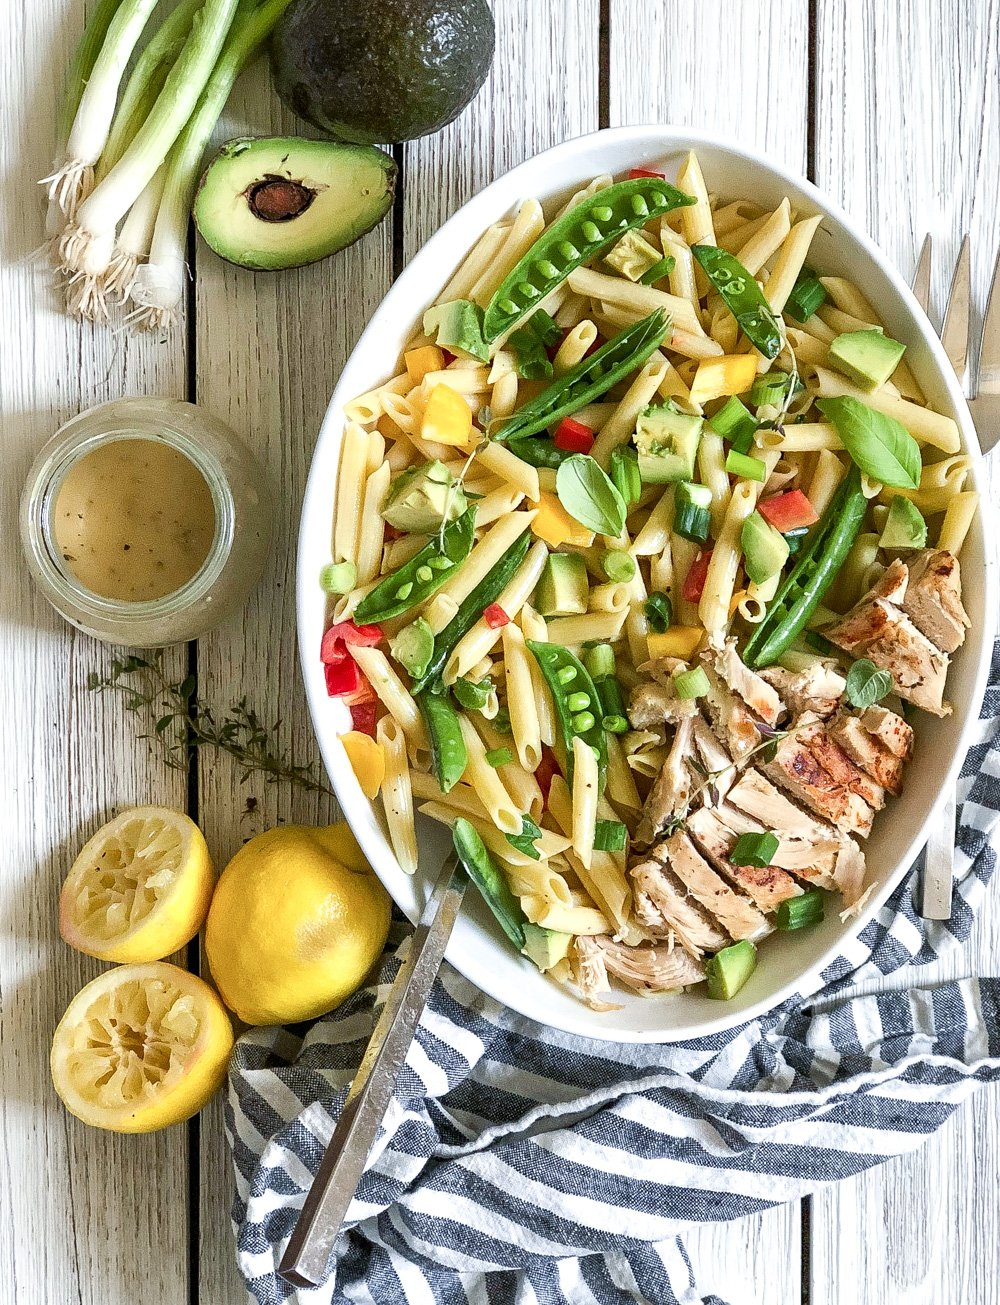 Lifestyle Blogger Chocolate and Lace shares her recipe for Avocado and Dijon Pasta Salad.